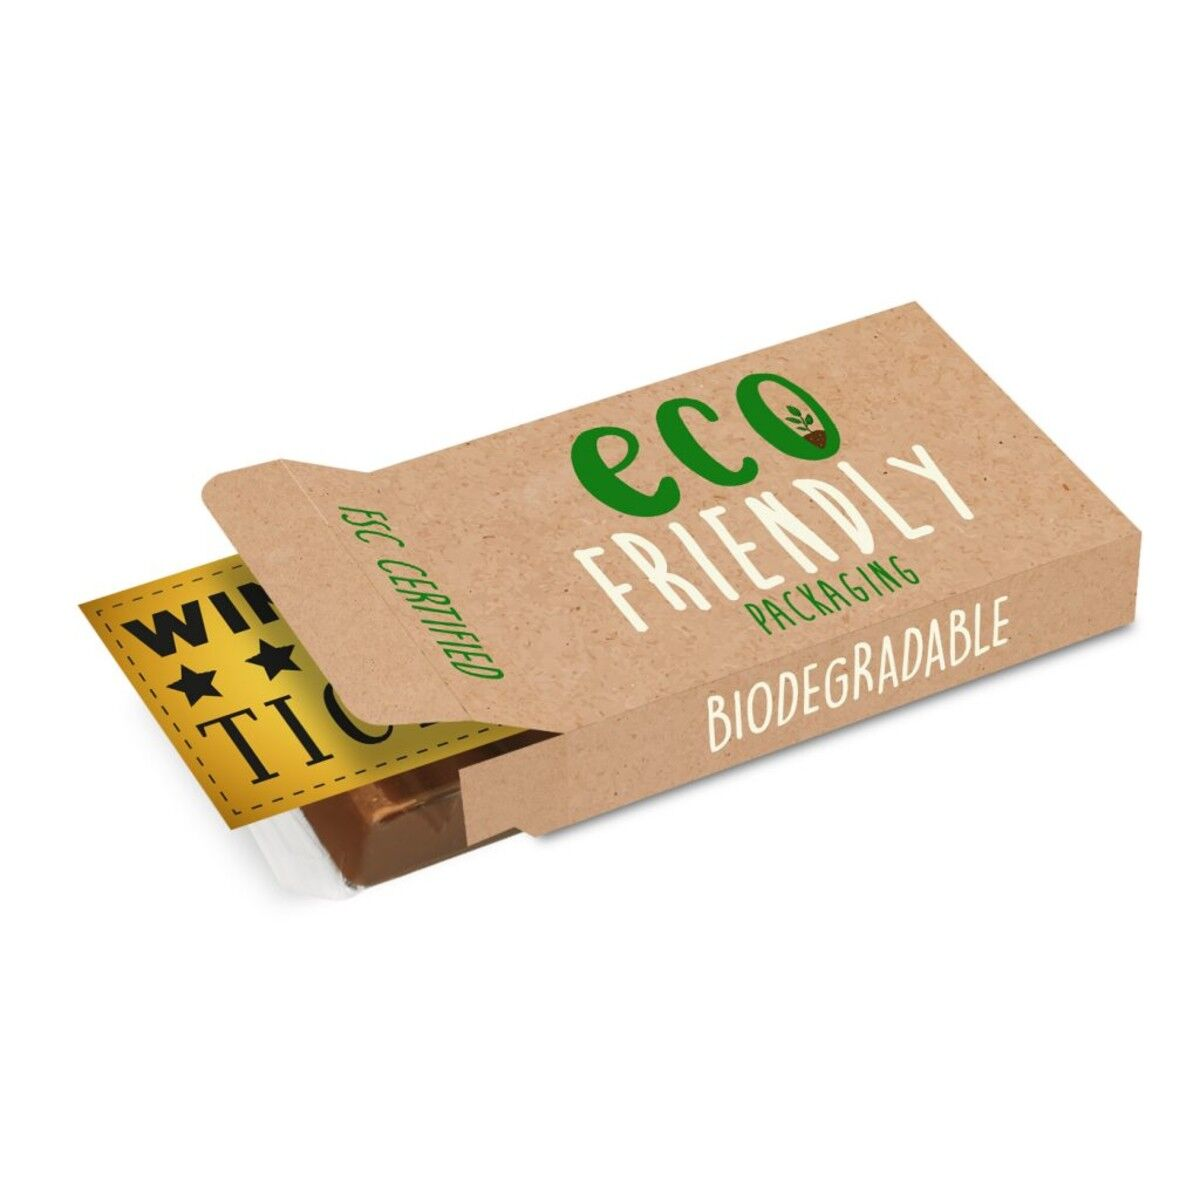 Eco Friendly 6 Bar Chocolate with golden ticket